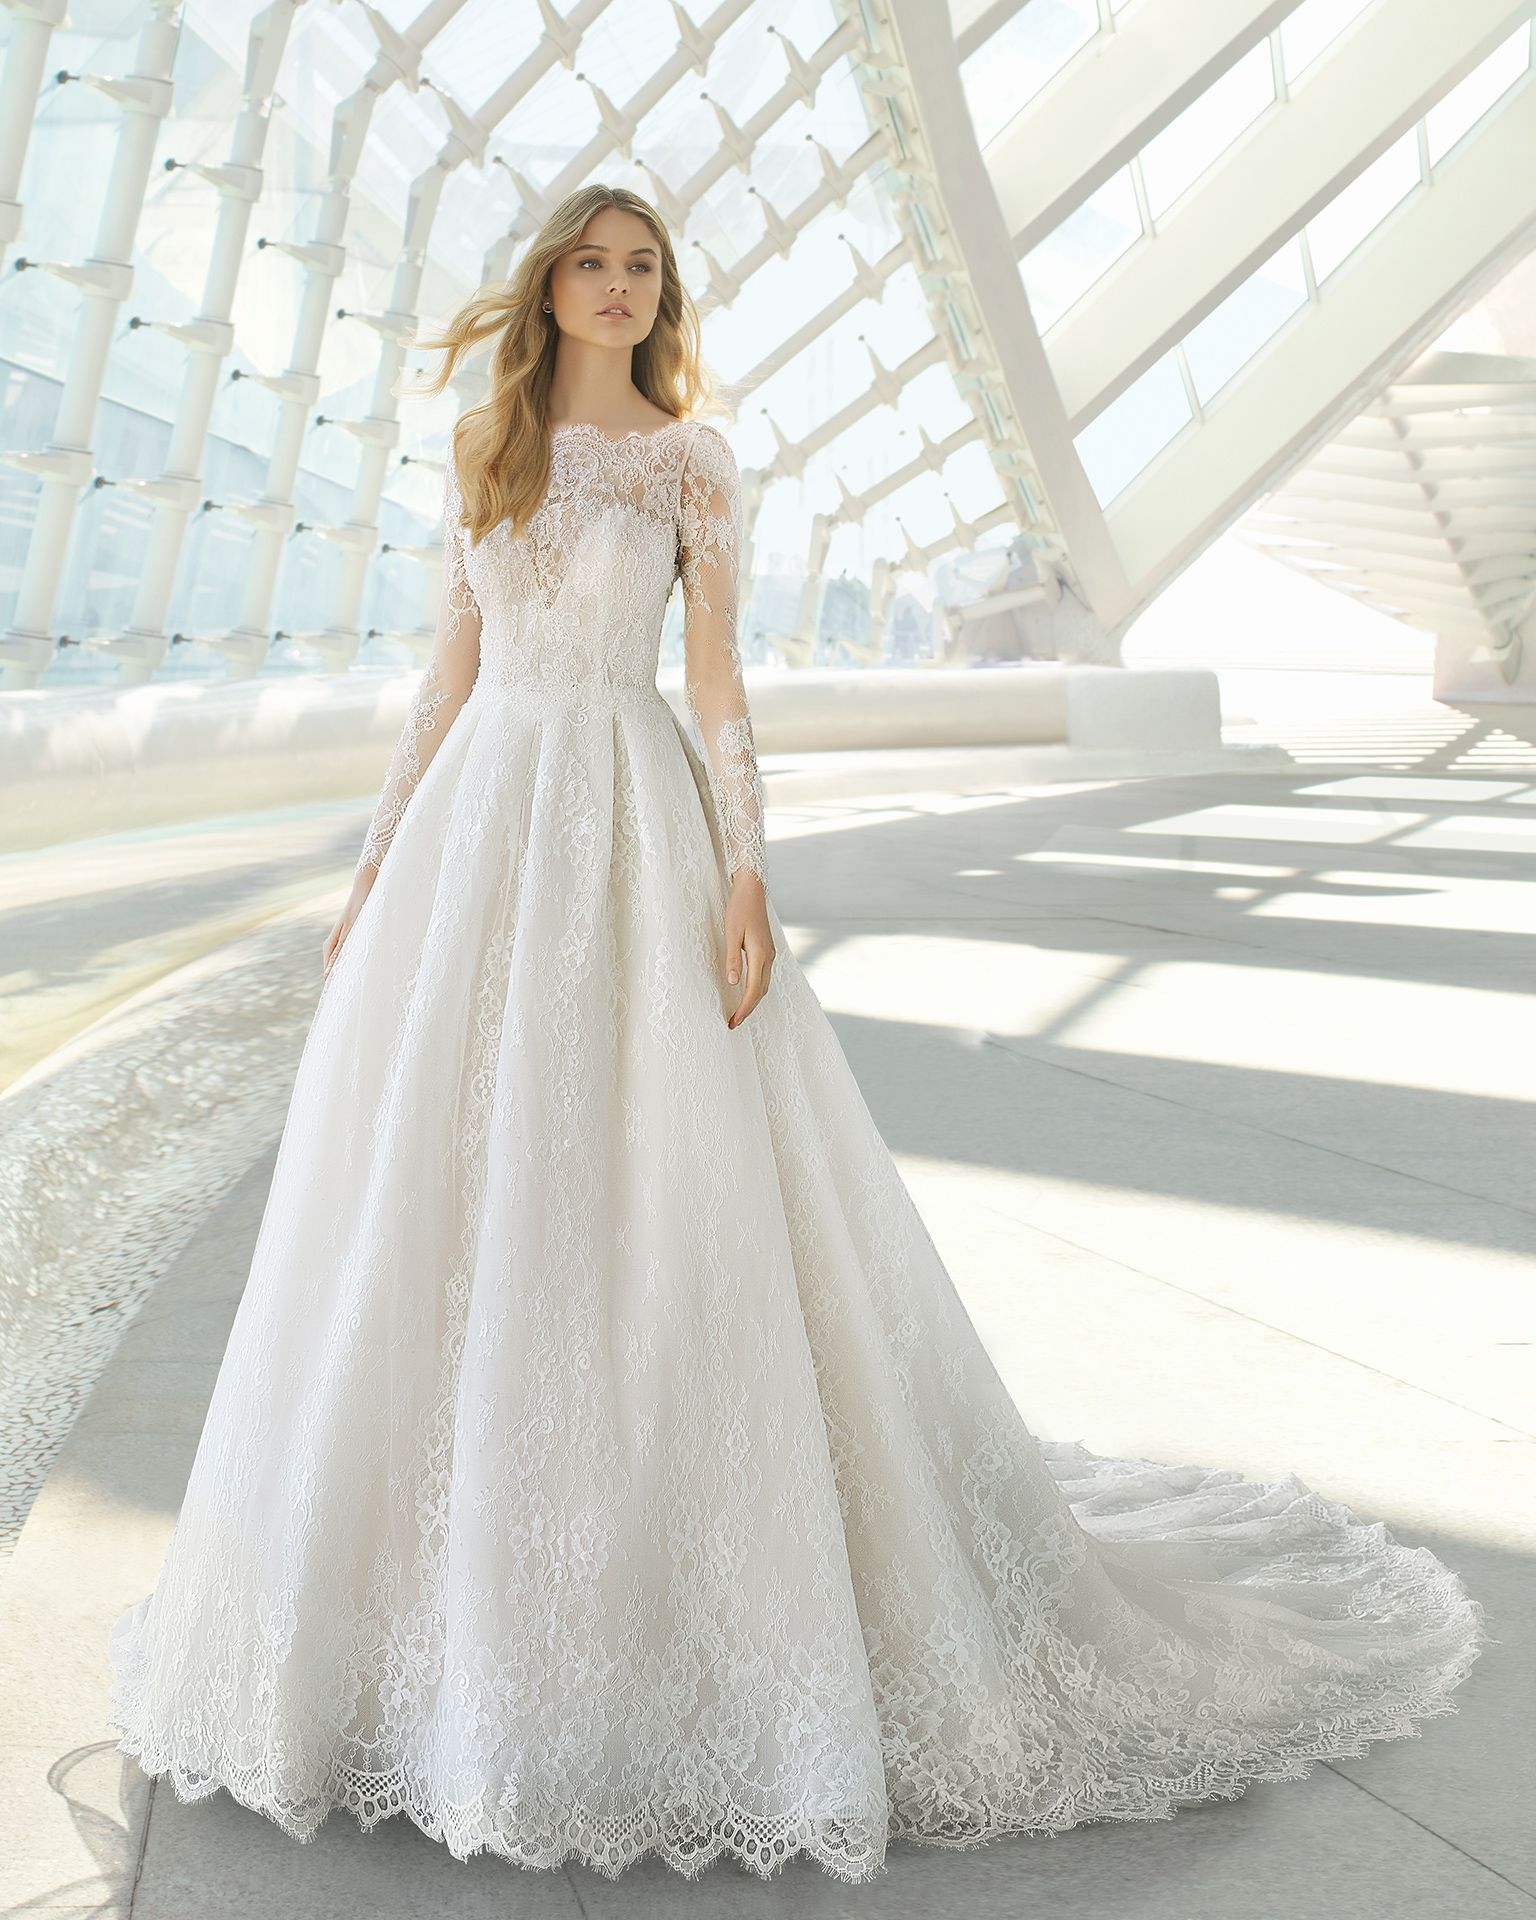 Dubai Princess Style Wedding Dresses Wedding Dress Long Sleeve Stylish Wedding Dresses